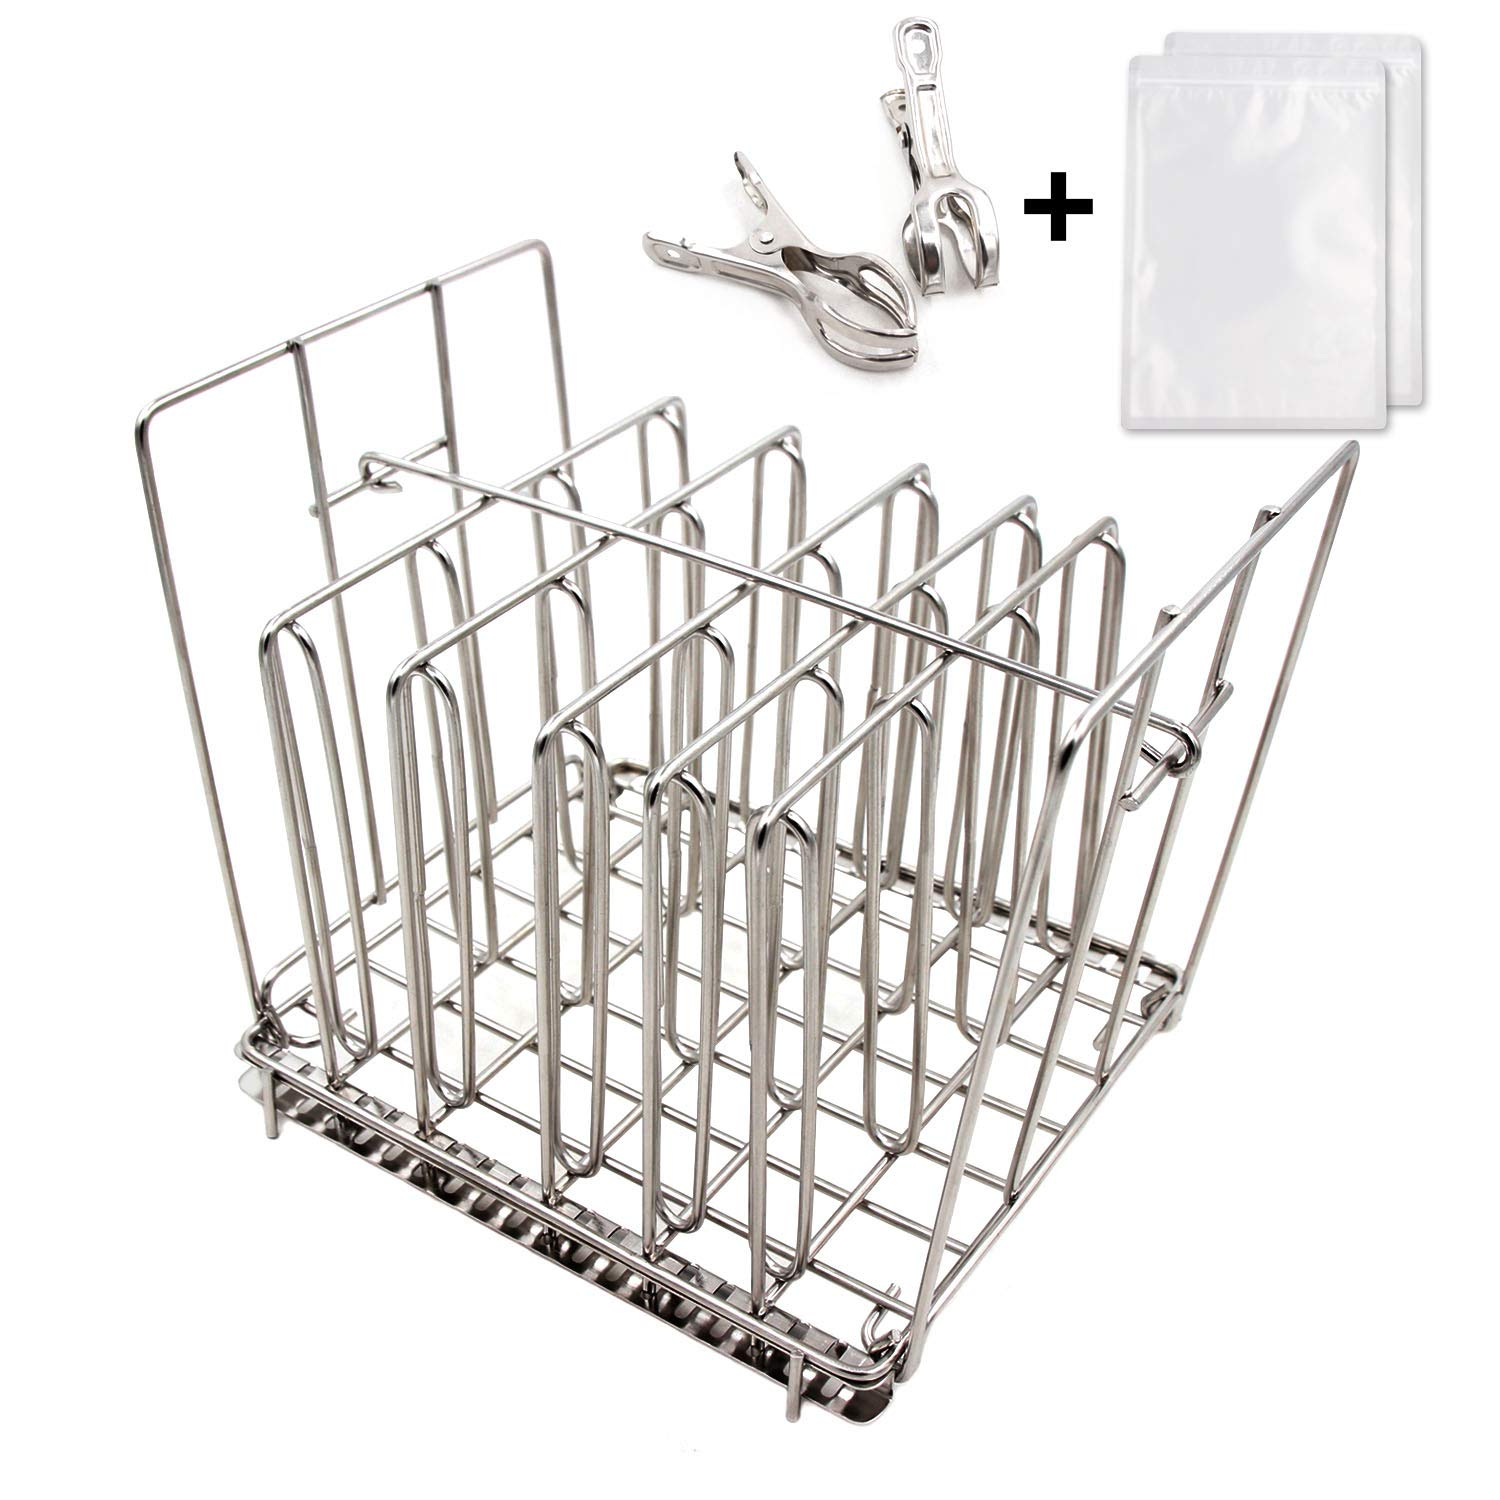 Sous Vide Rack Stainless Steel-Square 7.5 x 6.5 Inch- with Adjustable No-Float Top Bar, Collapsible Compact Design,Ensures even and Quick warming with Sous Vide Cooking,Fits Most 12qt Containers by BENGKU